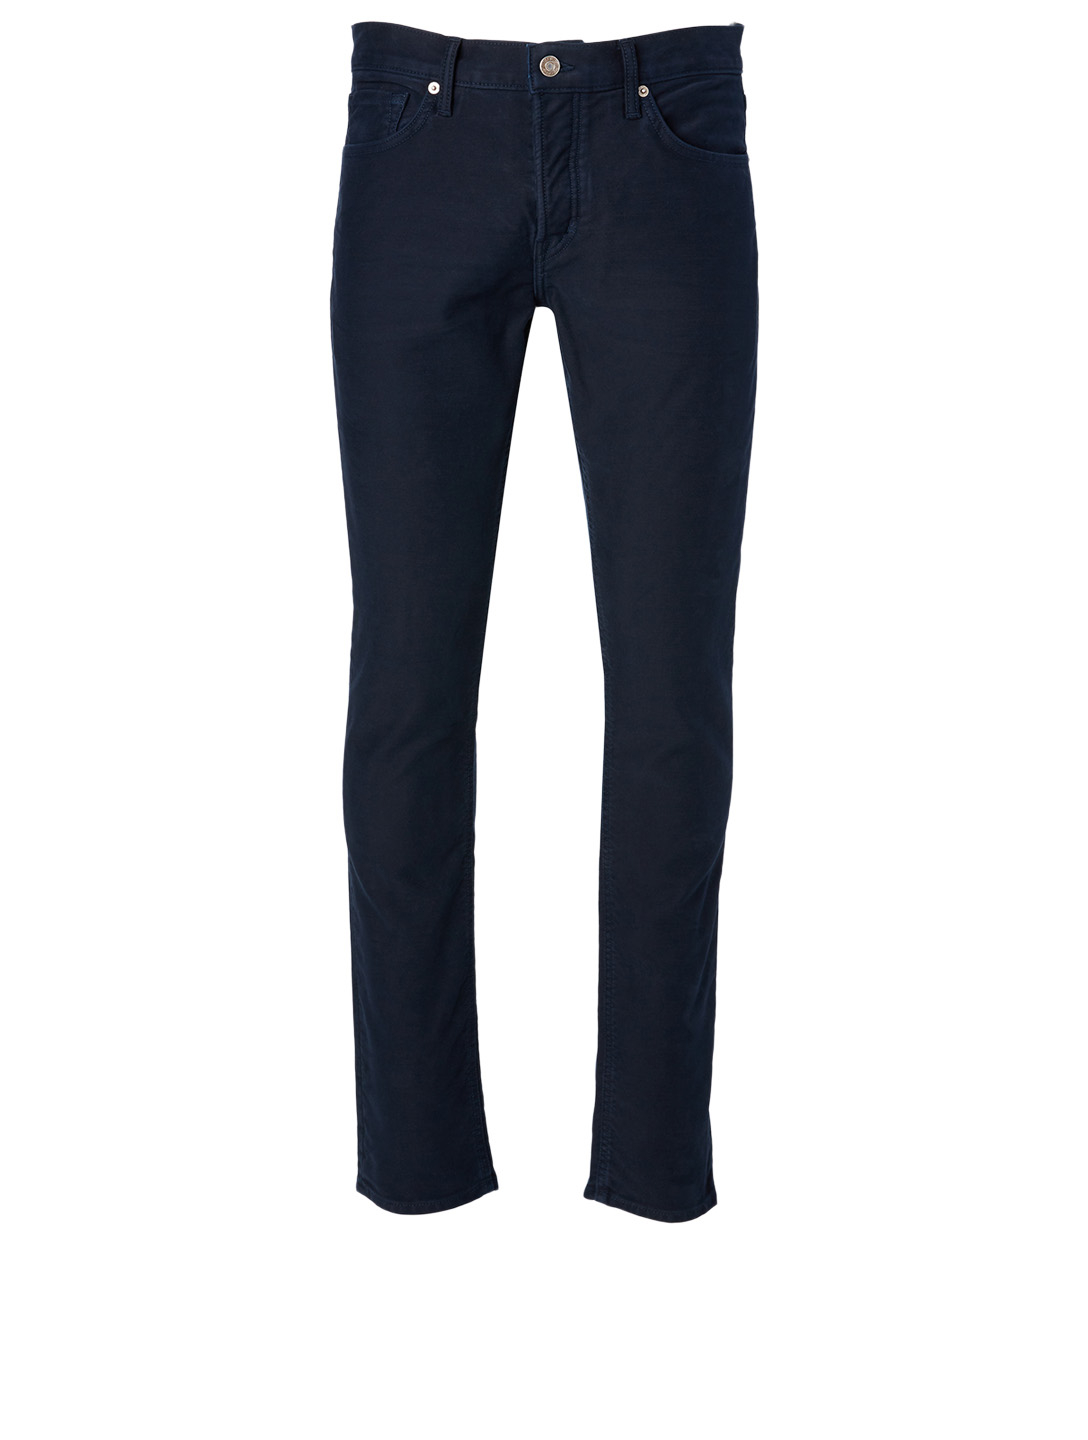 TOM FORD Cotton Slim-Fit Jeans Men's Blue